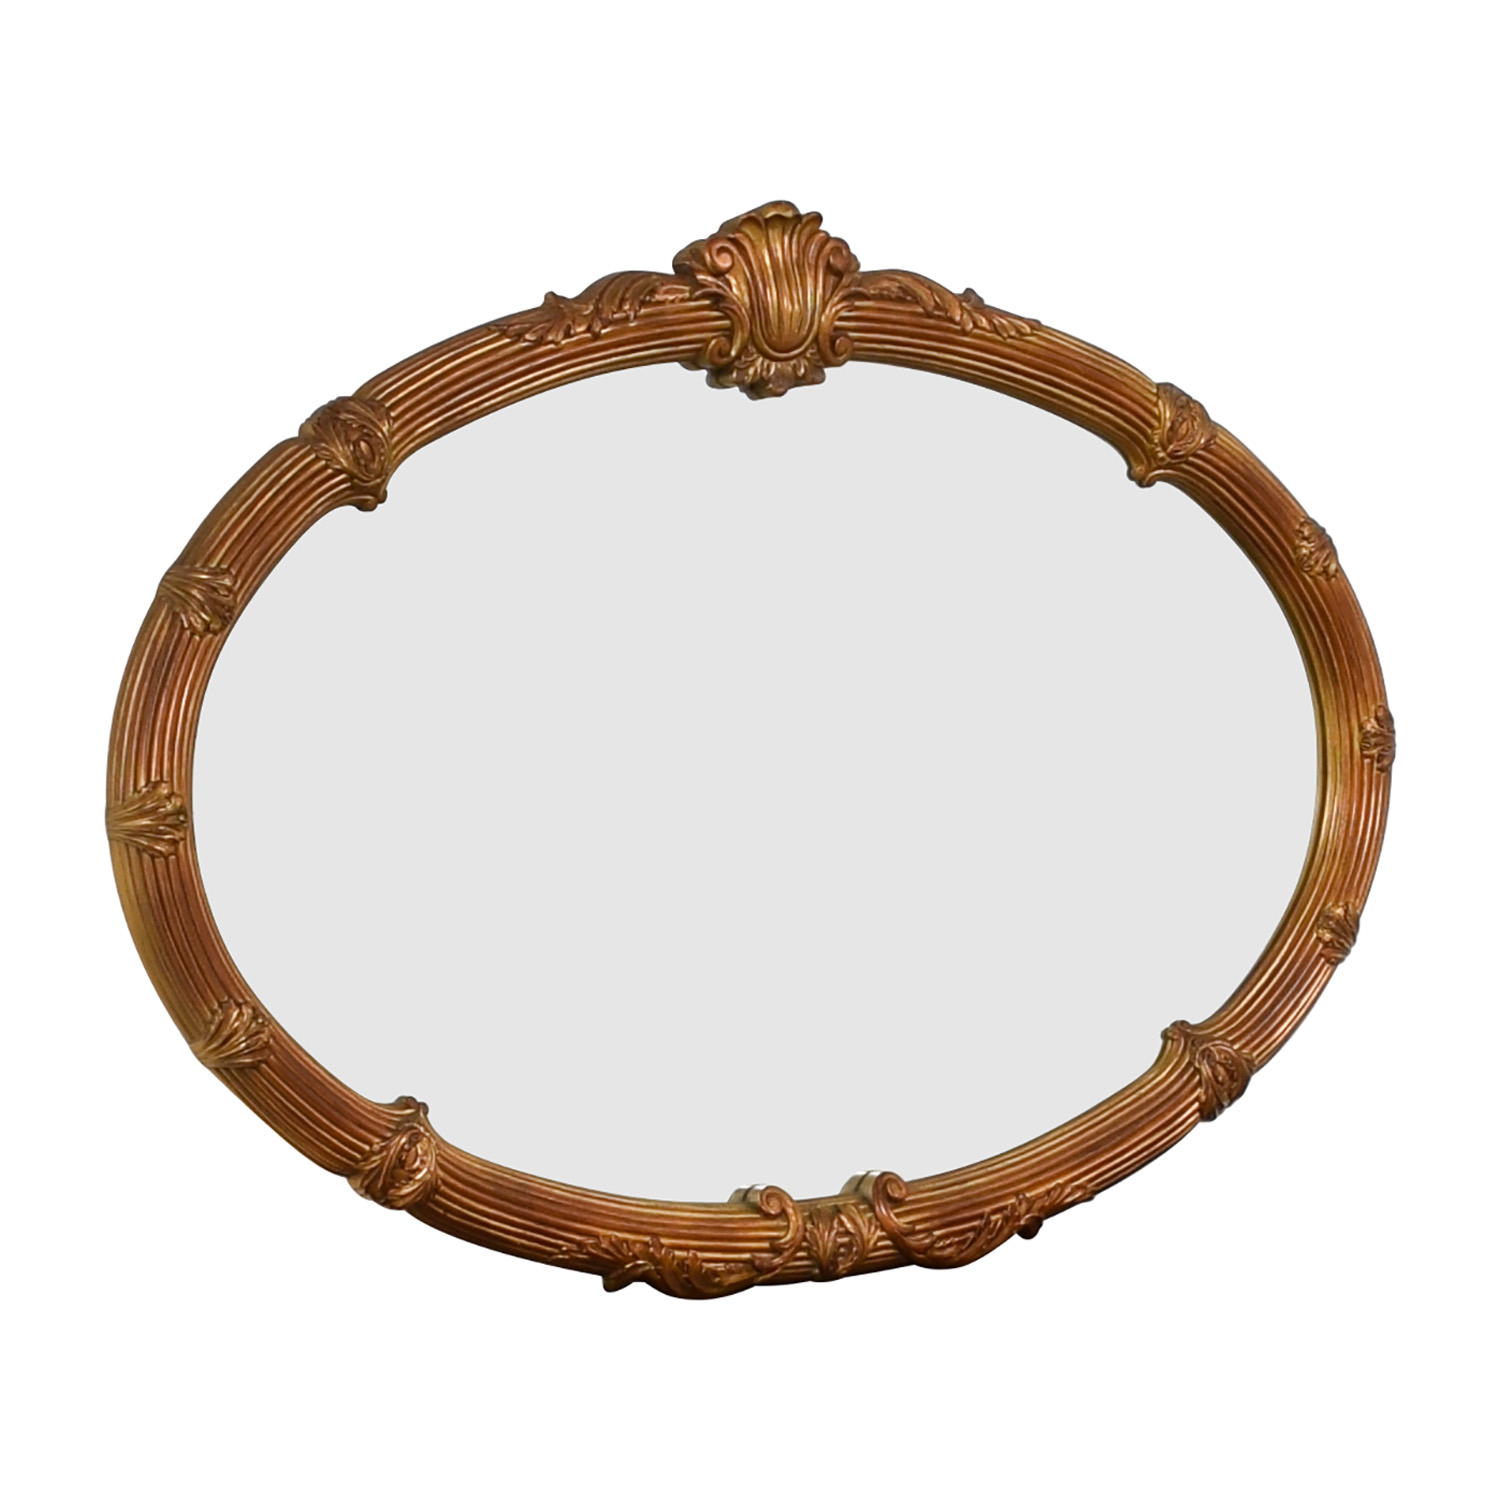 Gold Framed Wall Mirror used